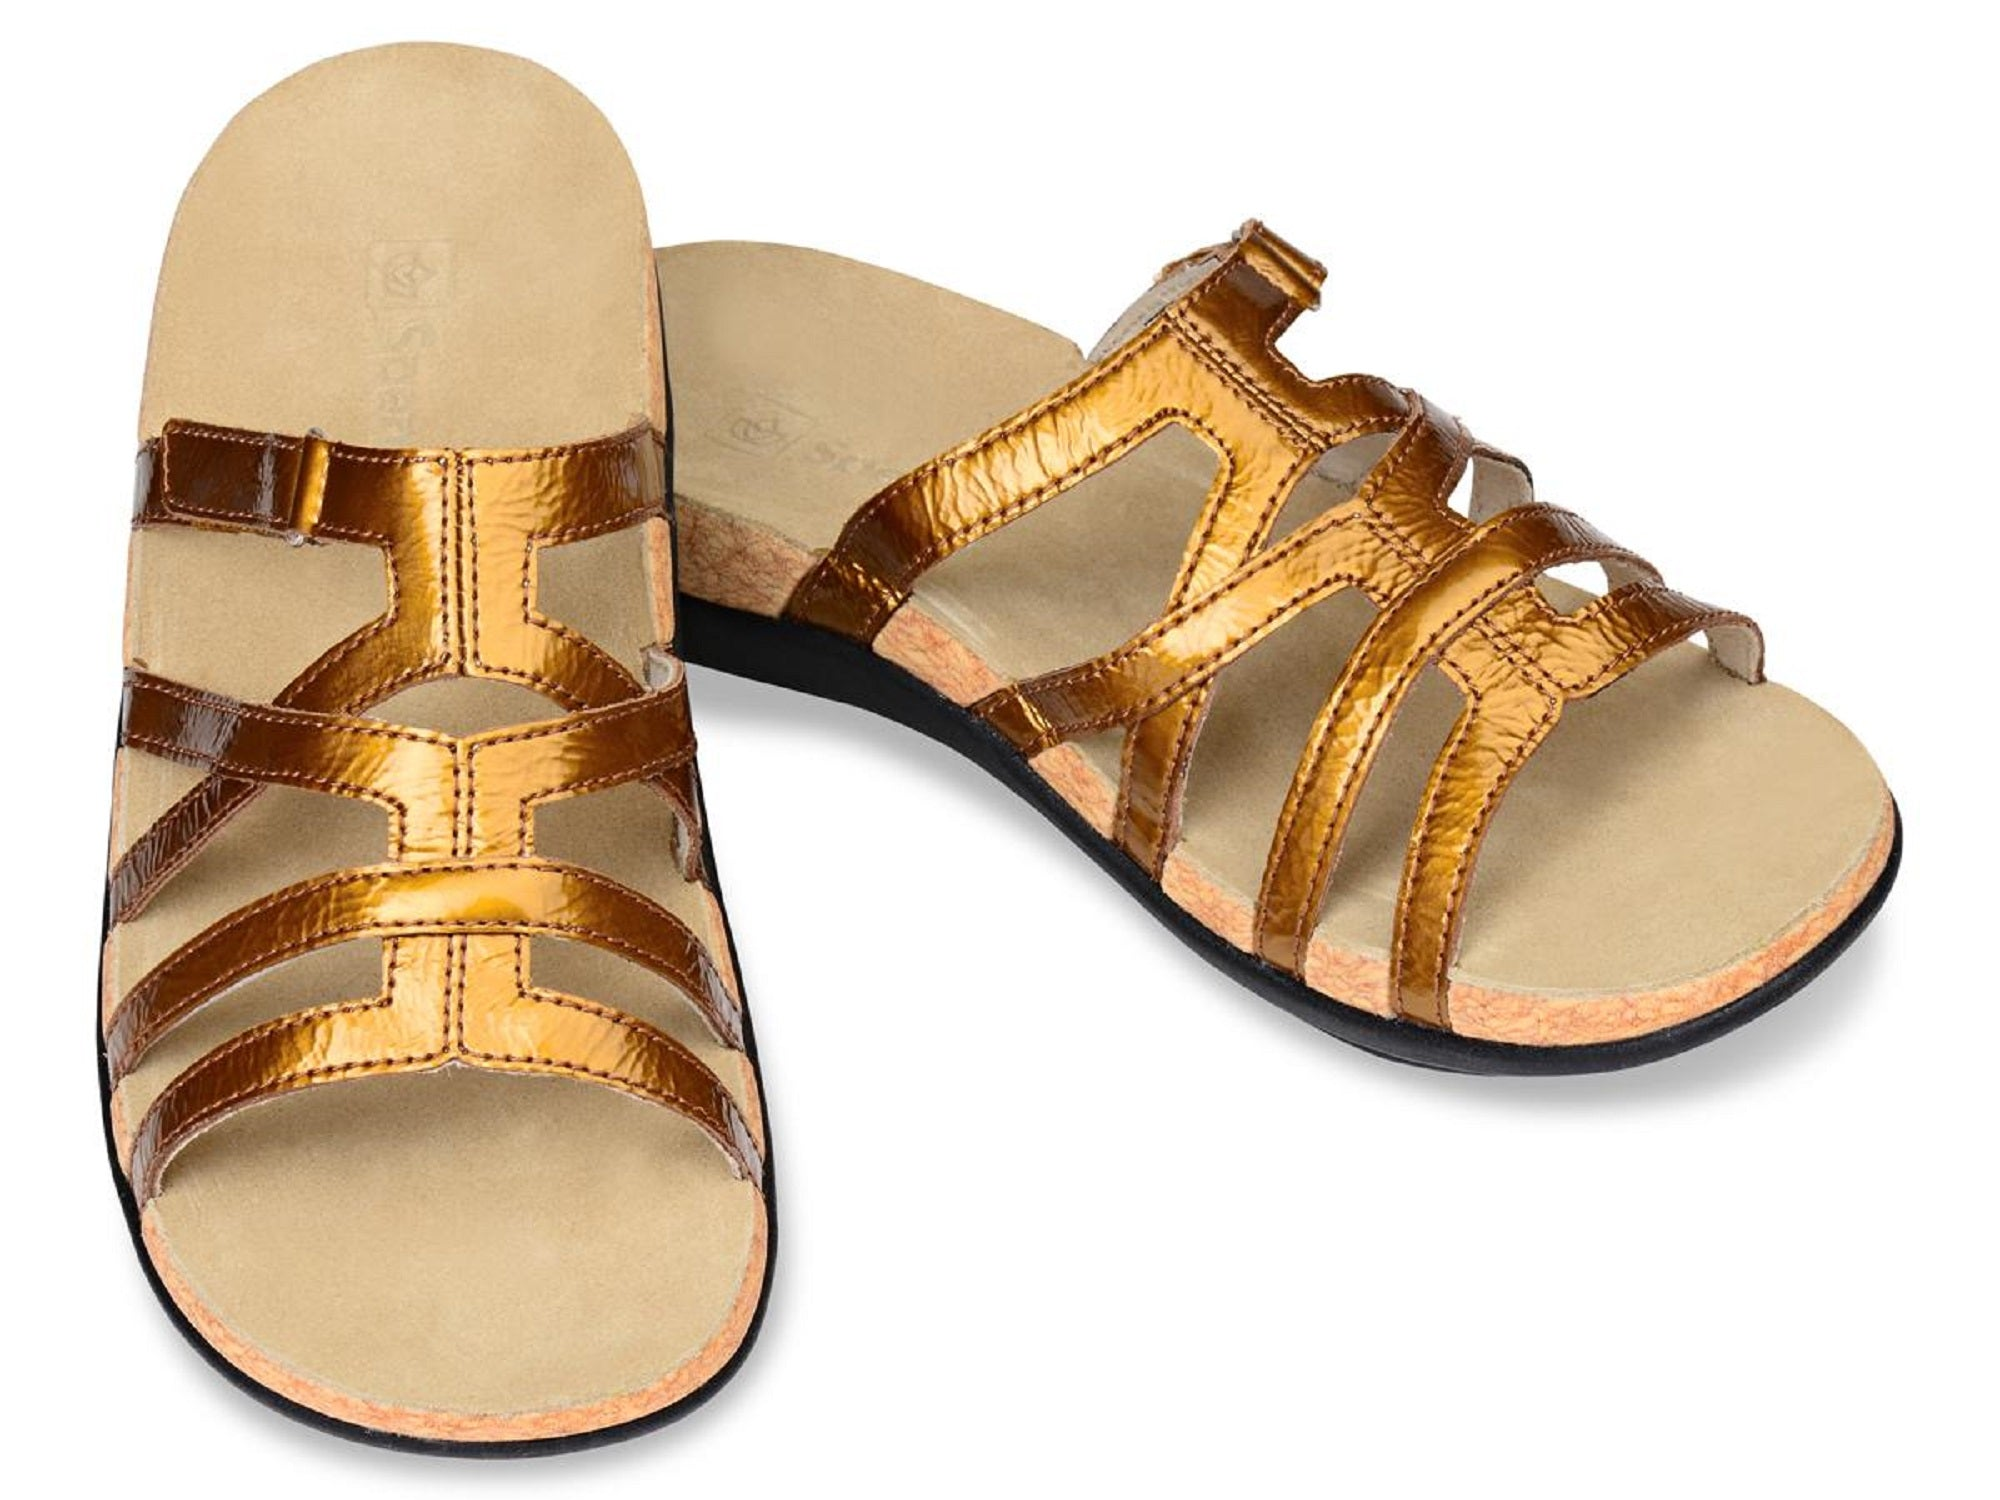 Spenco Women's Roman Gold Sandal, Size 10